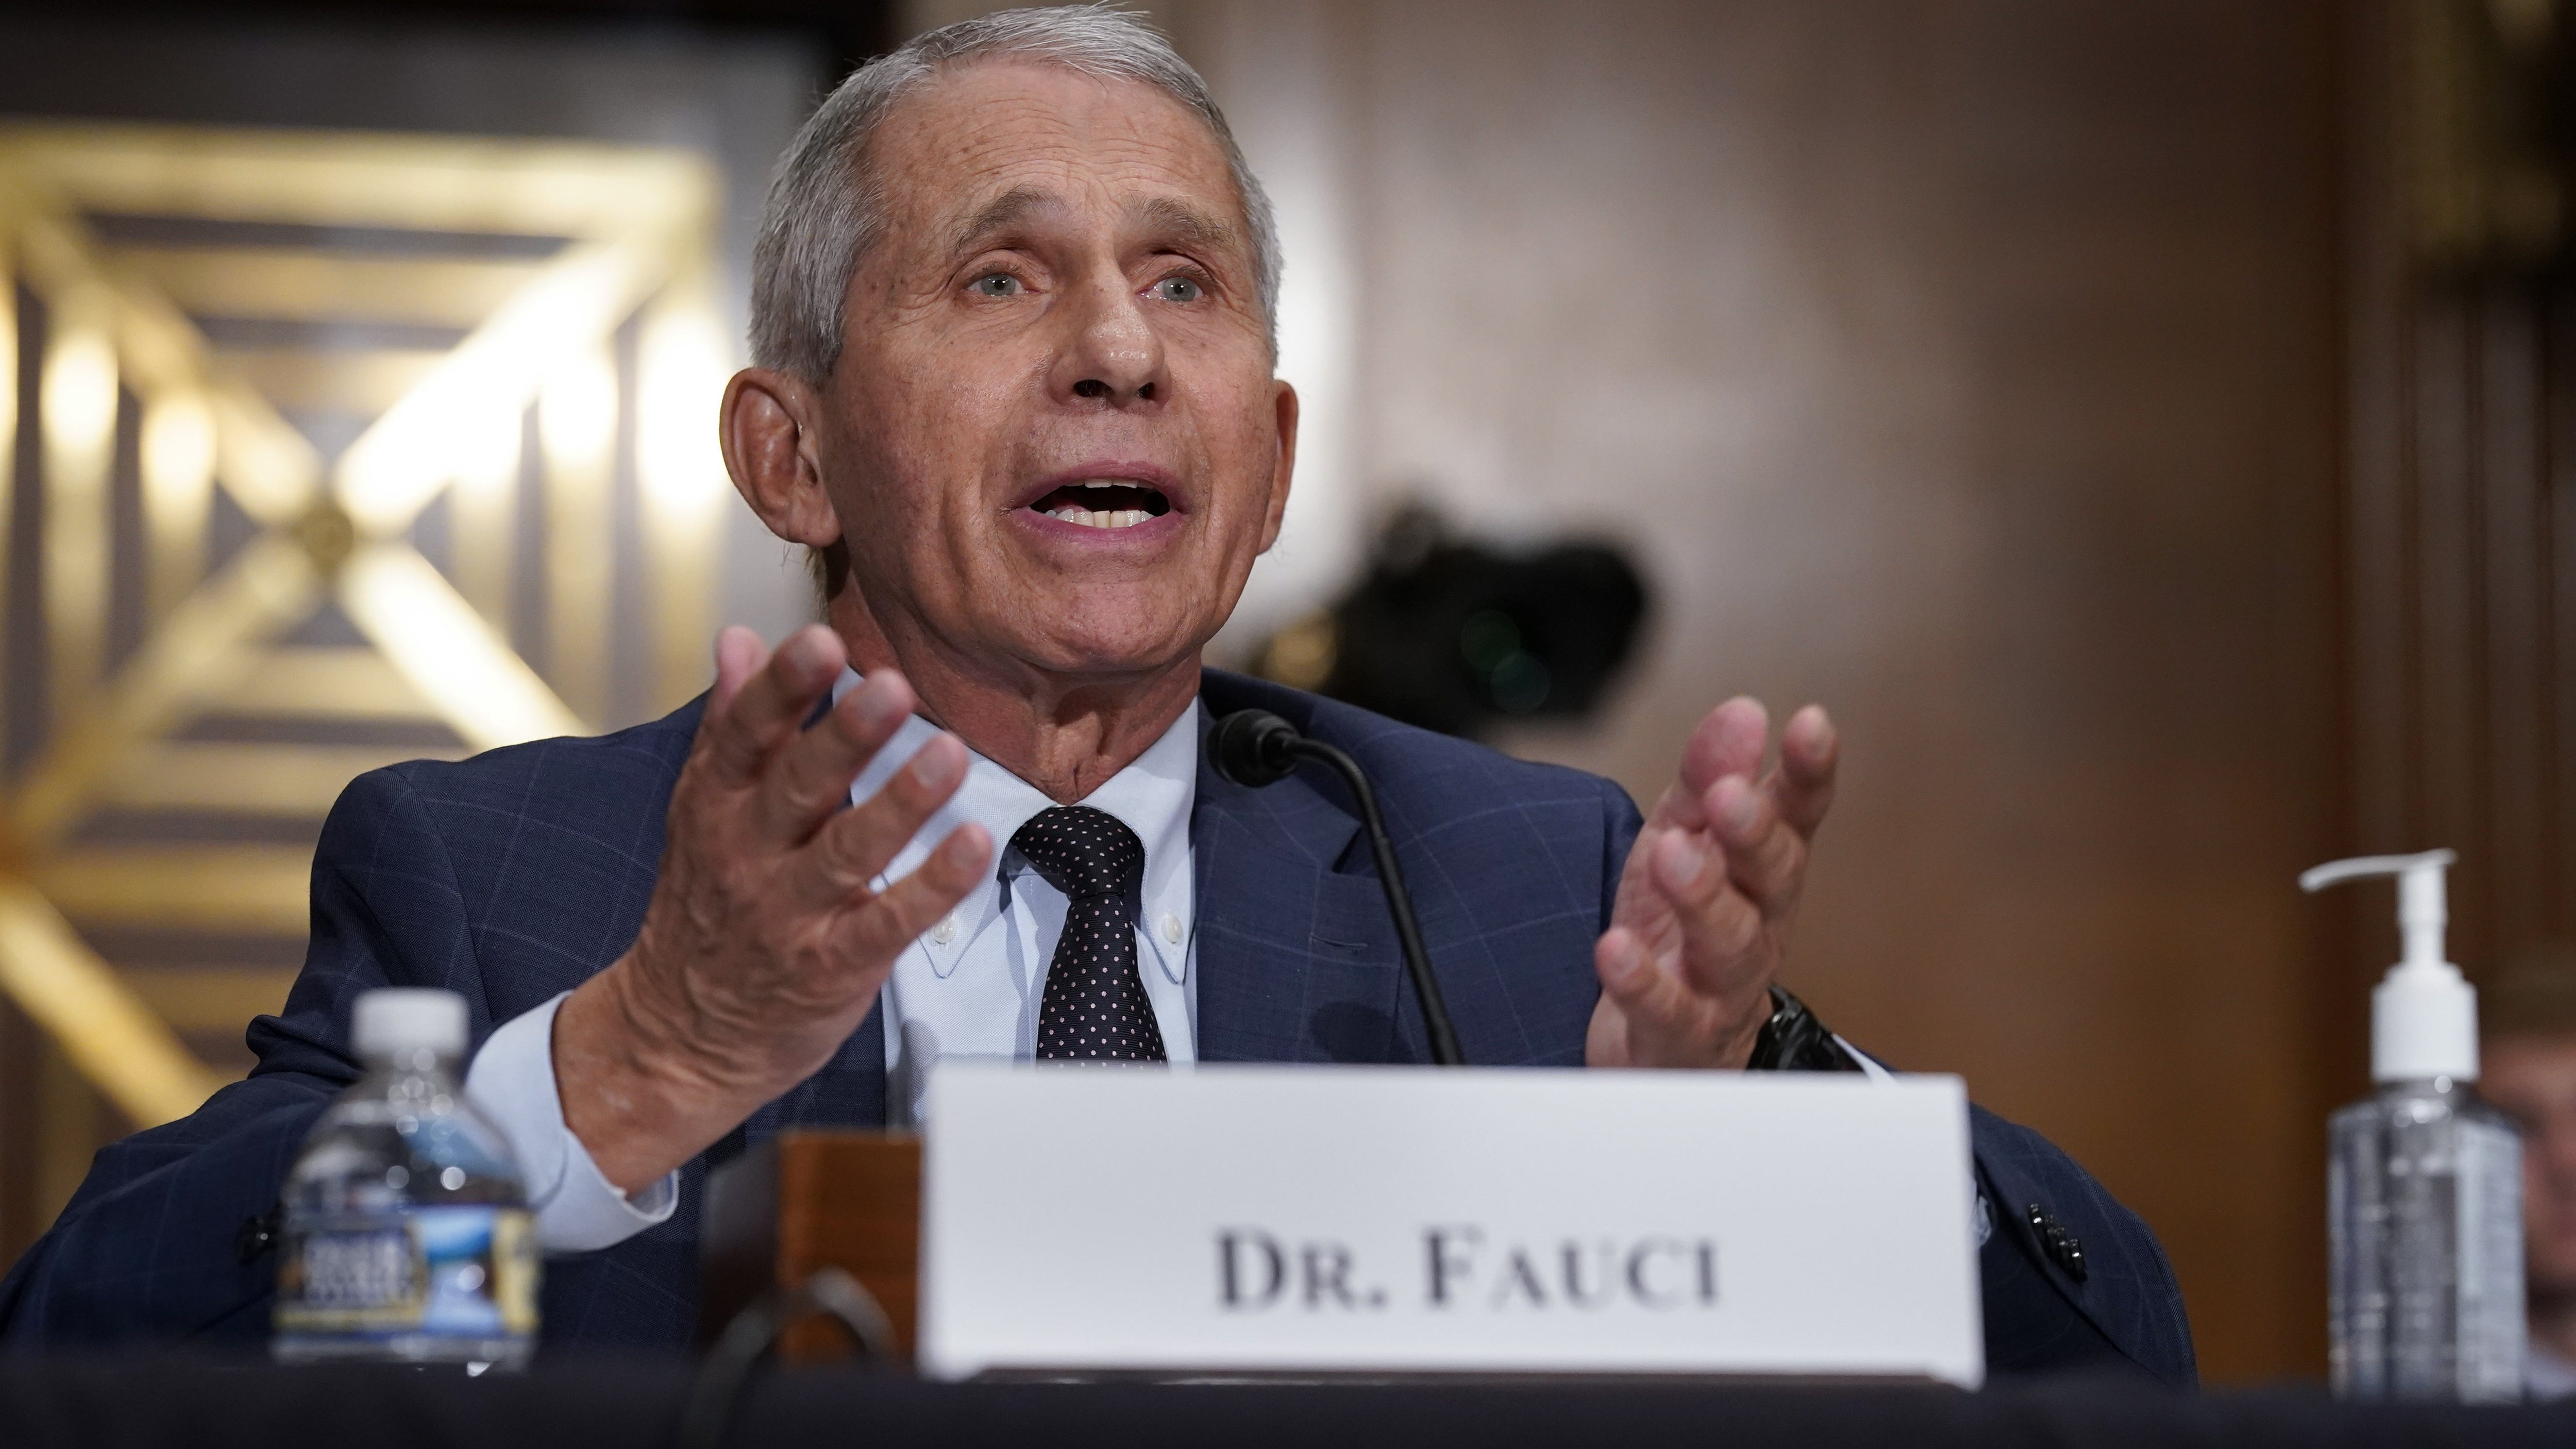 Indiana Univeristy honors Dr. Fauci with award named for Ryan White